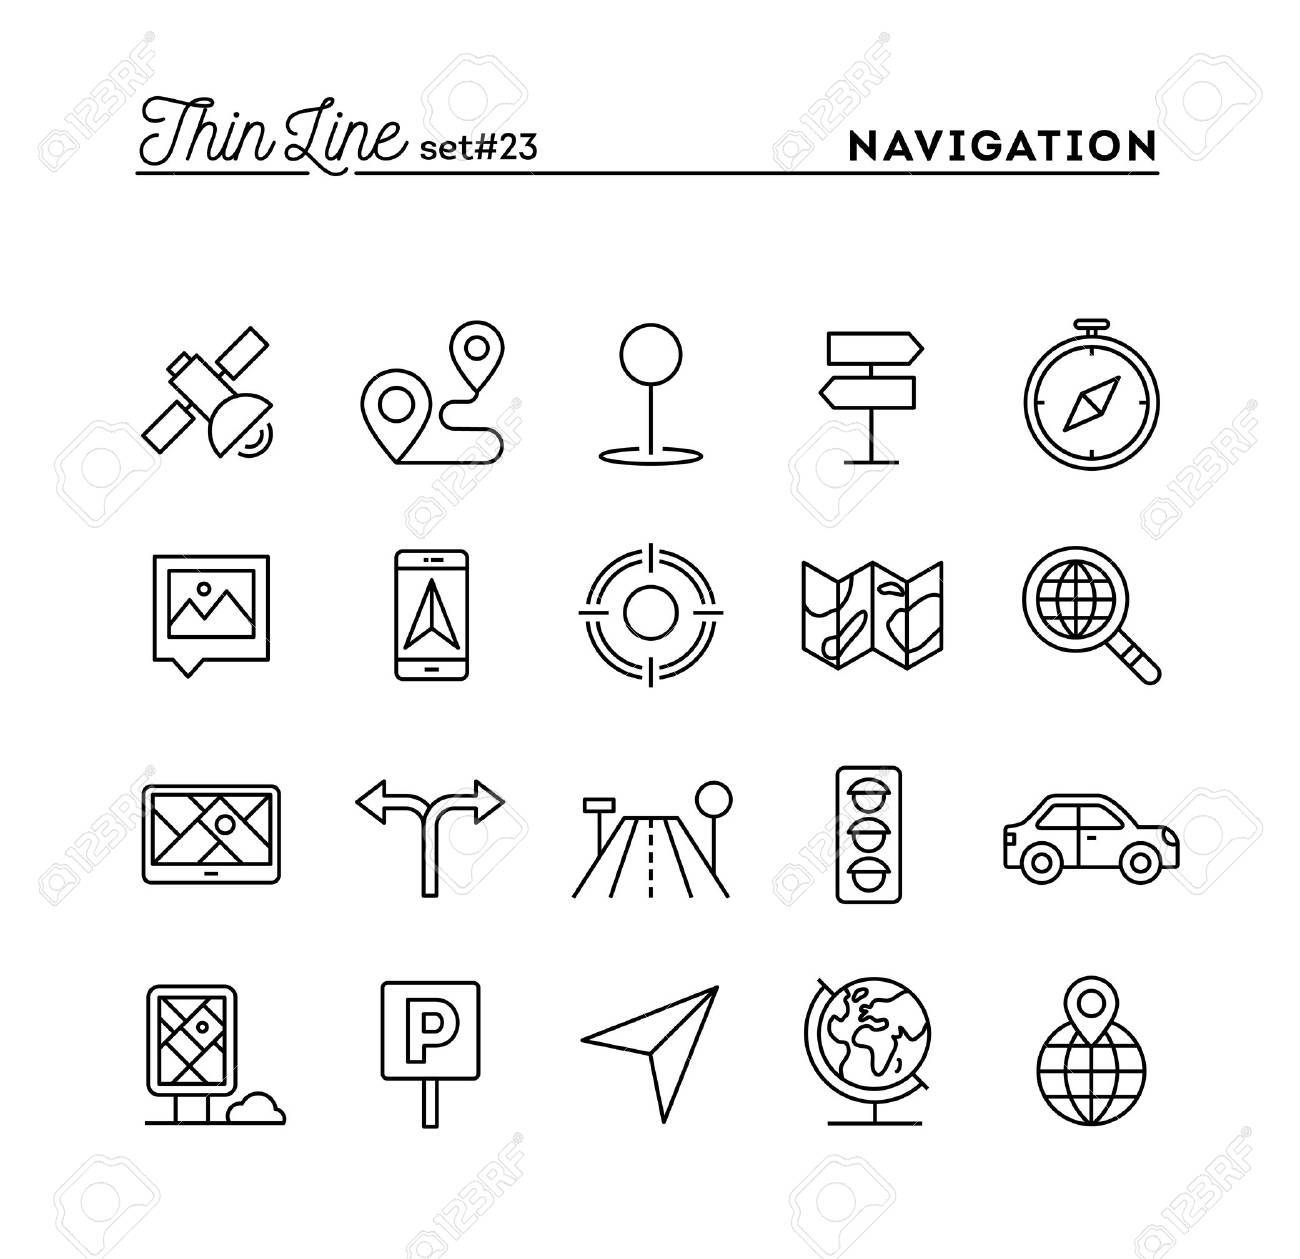 Navigation, direction, maps, traffic and more, thin line icons set, vector illustration - 61454048